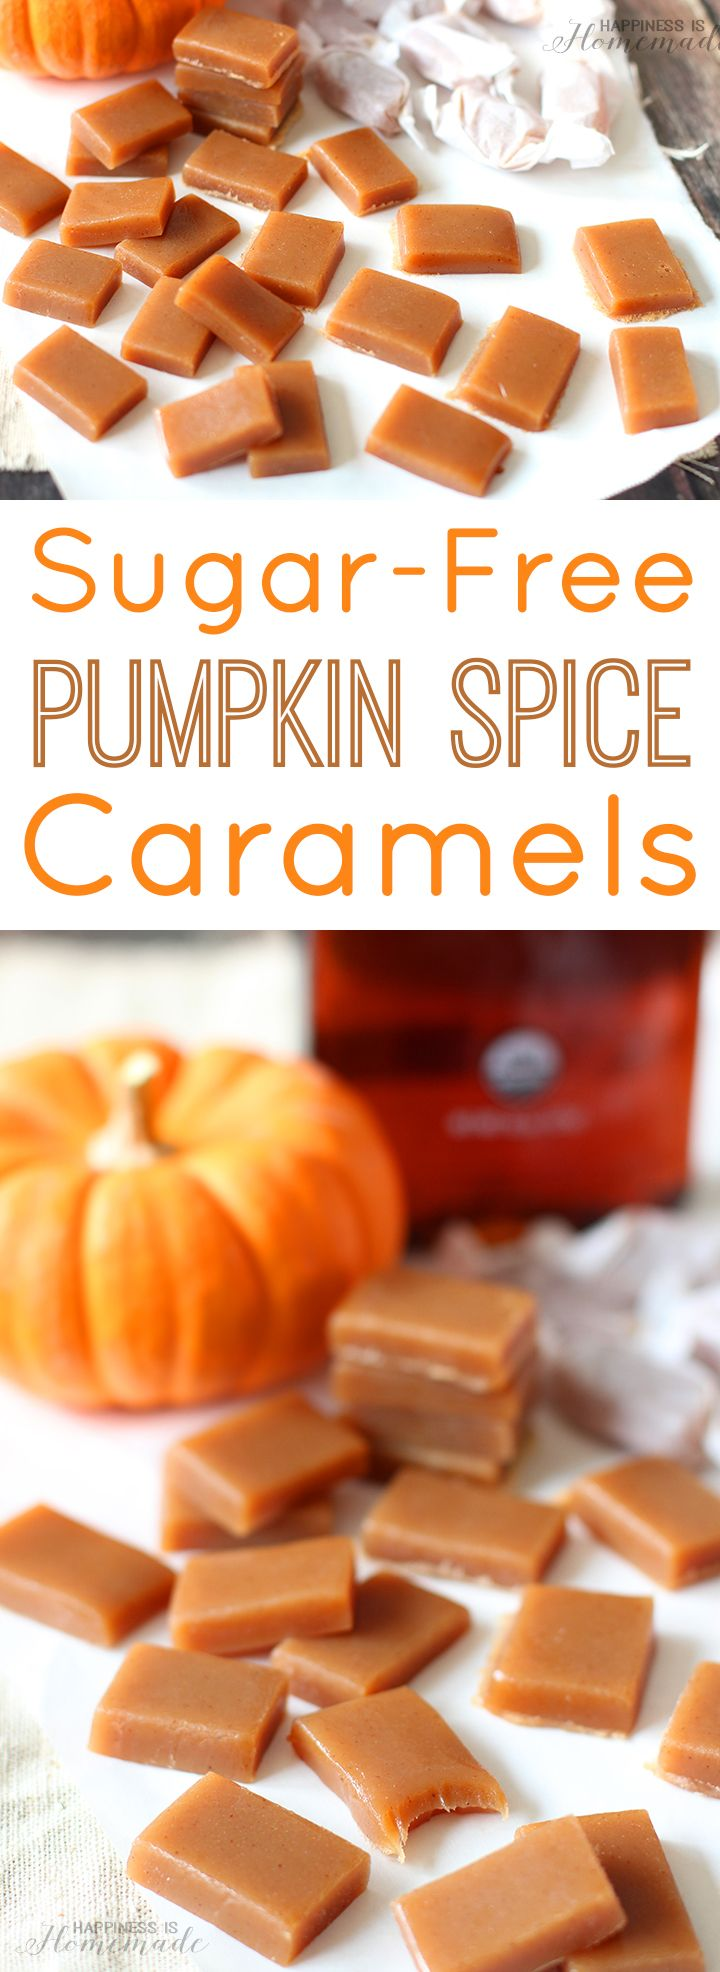 Sugar-Free Pumpkin Spice Caramels with Agave #InTheRaw from @InTheRawBrands - ad Happiness is Homemade